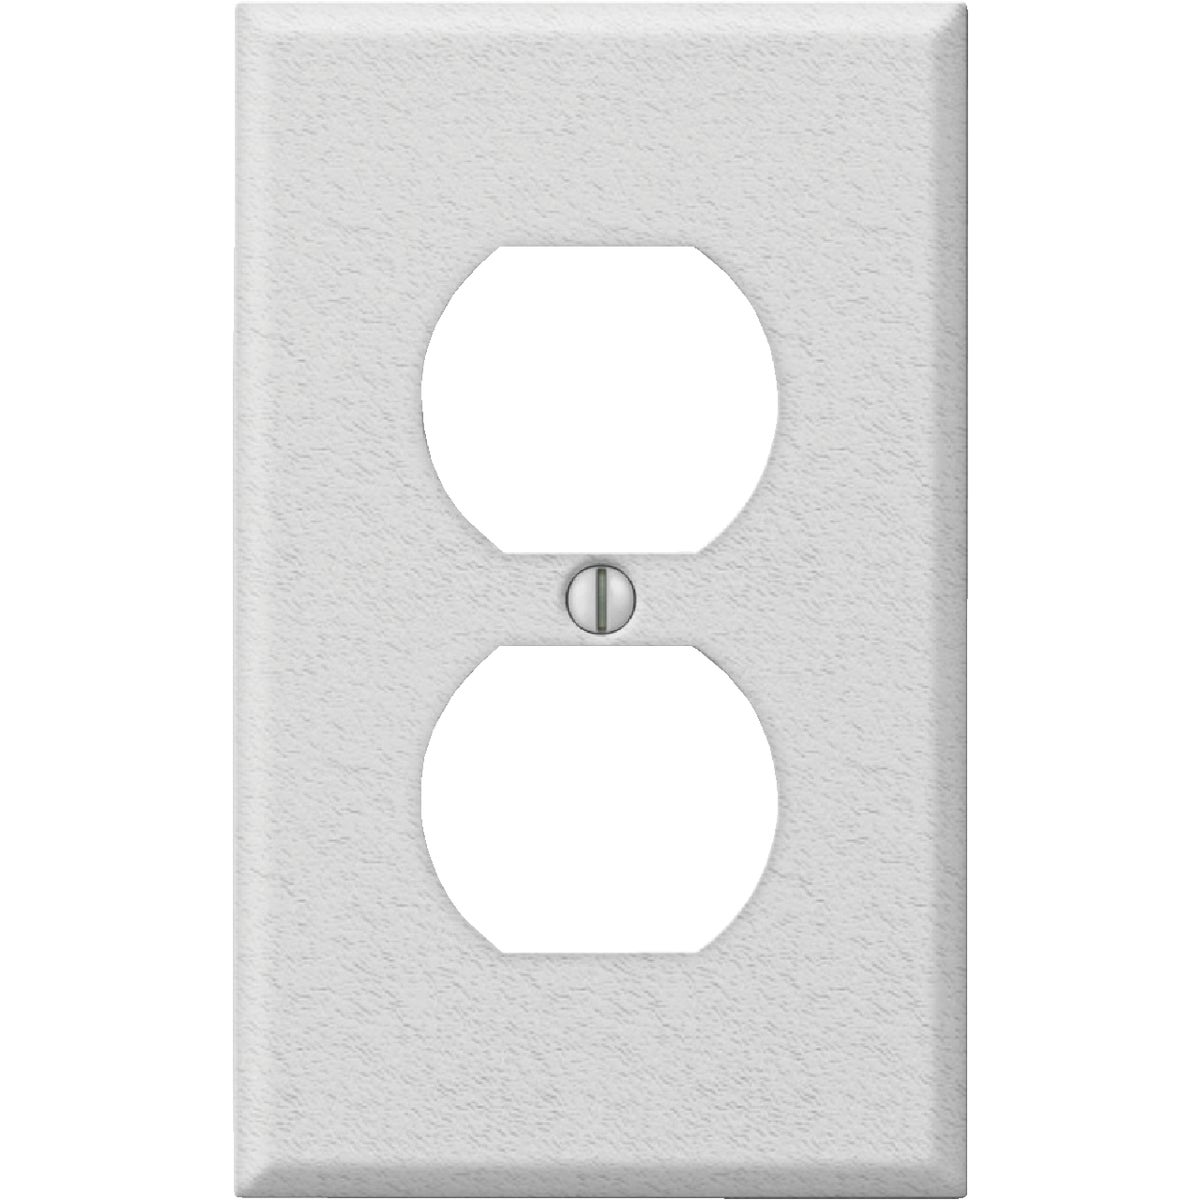 WHT OUTLET WALL PLATE